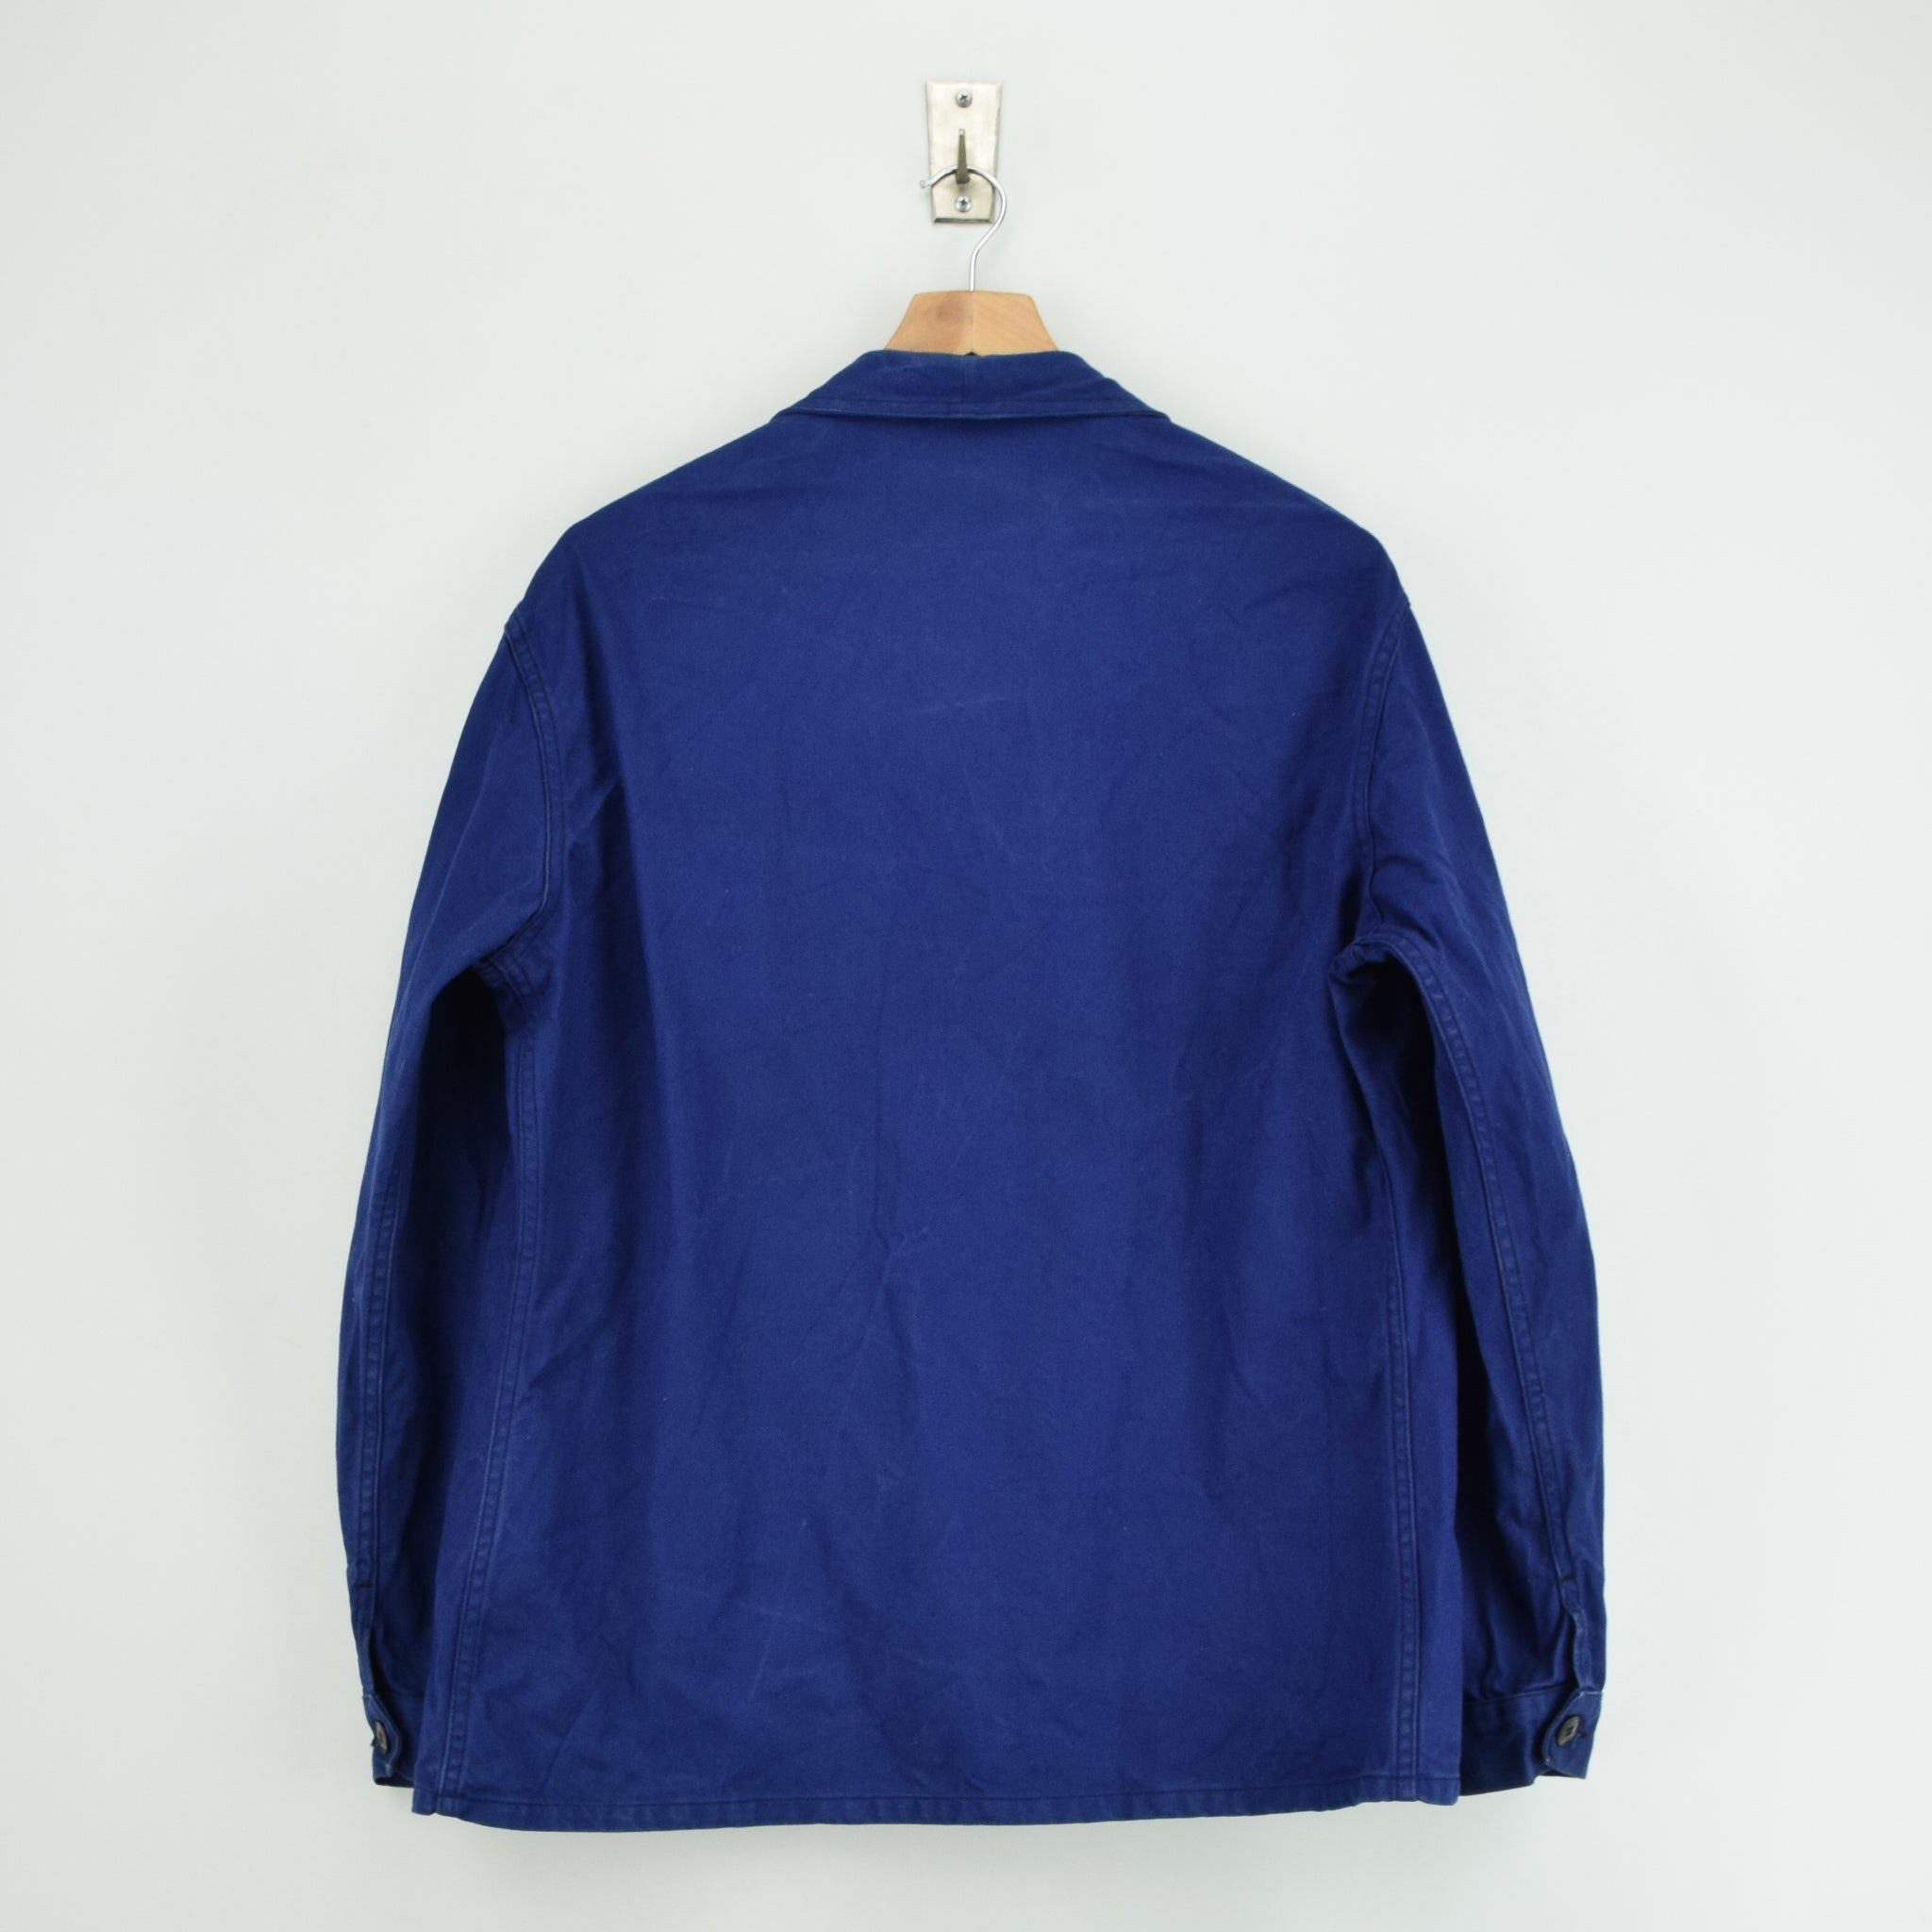 Vintage Indigo Blue French Worker Sanforized Cotton Chore Jacket L back